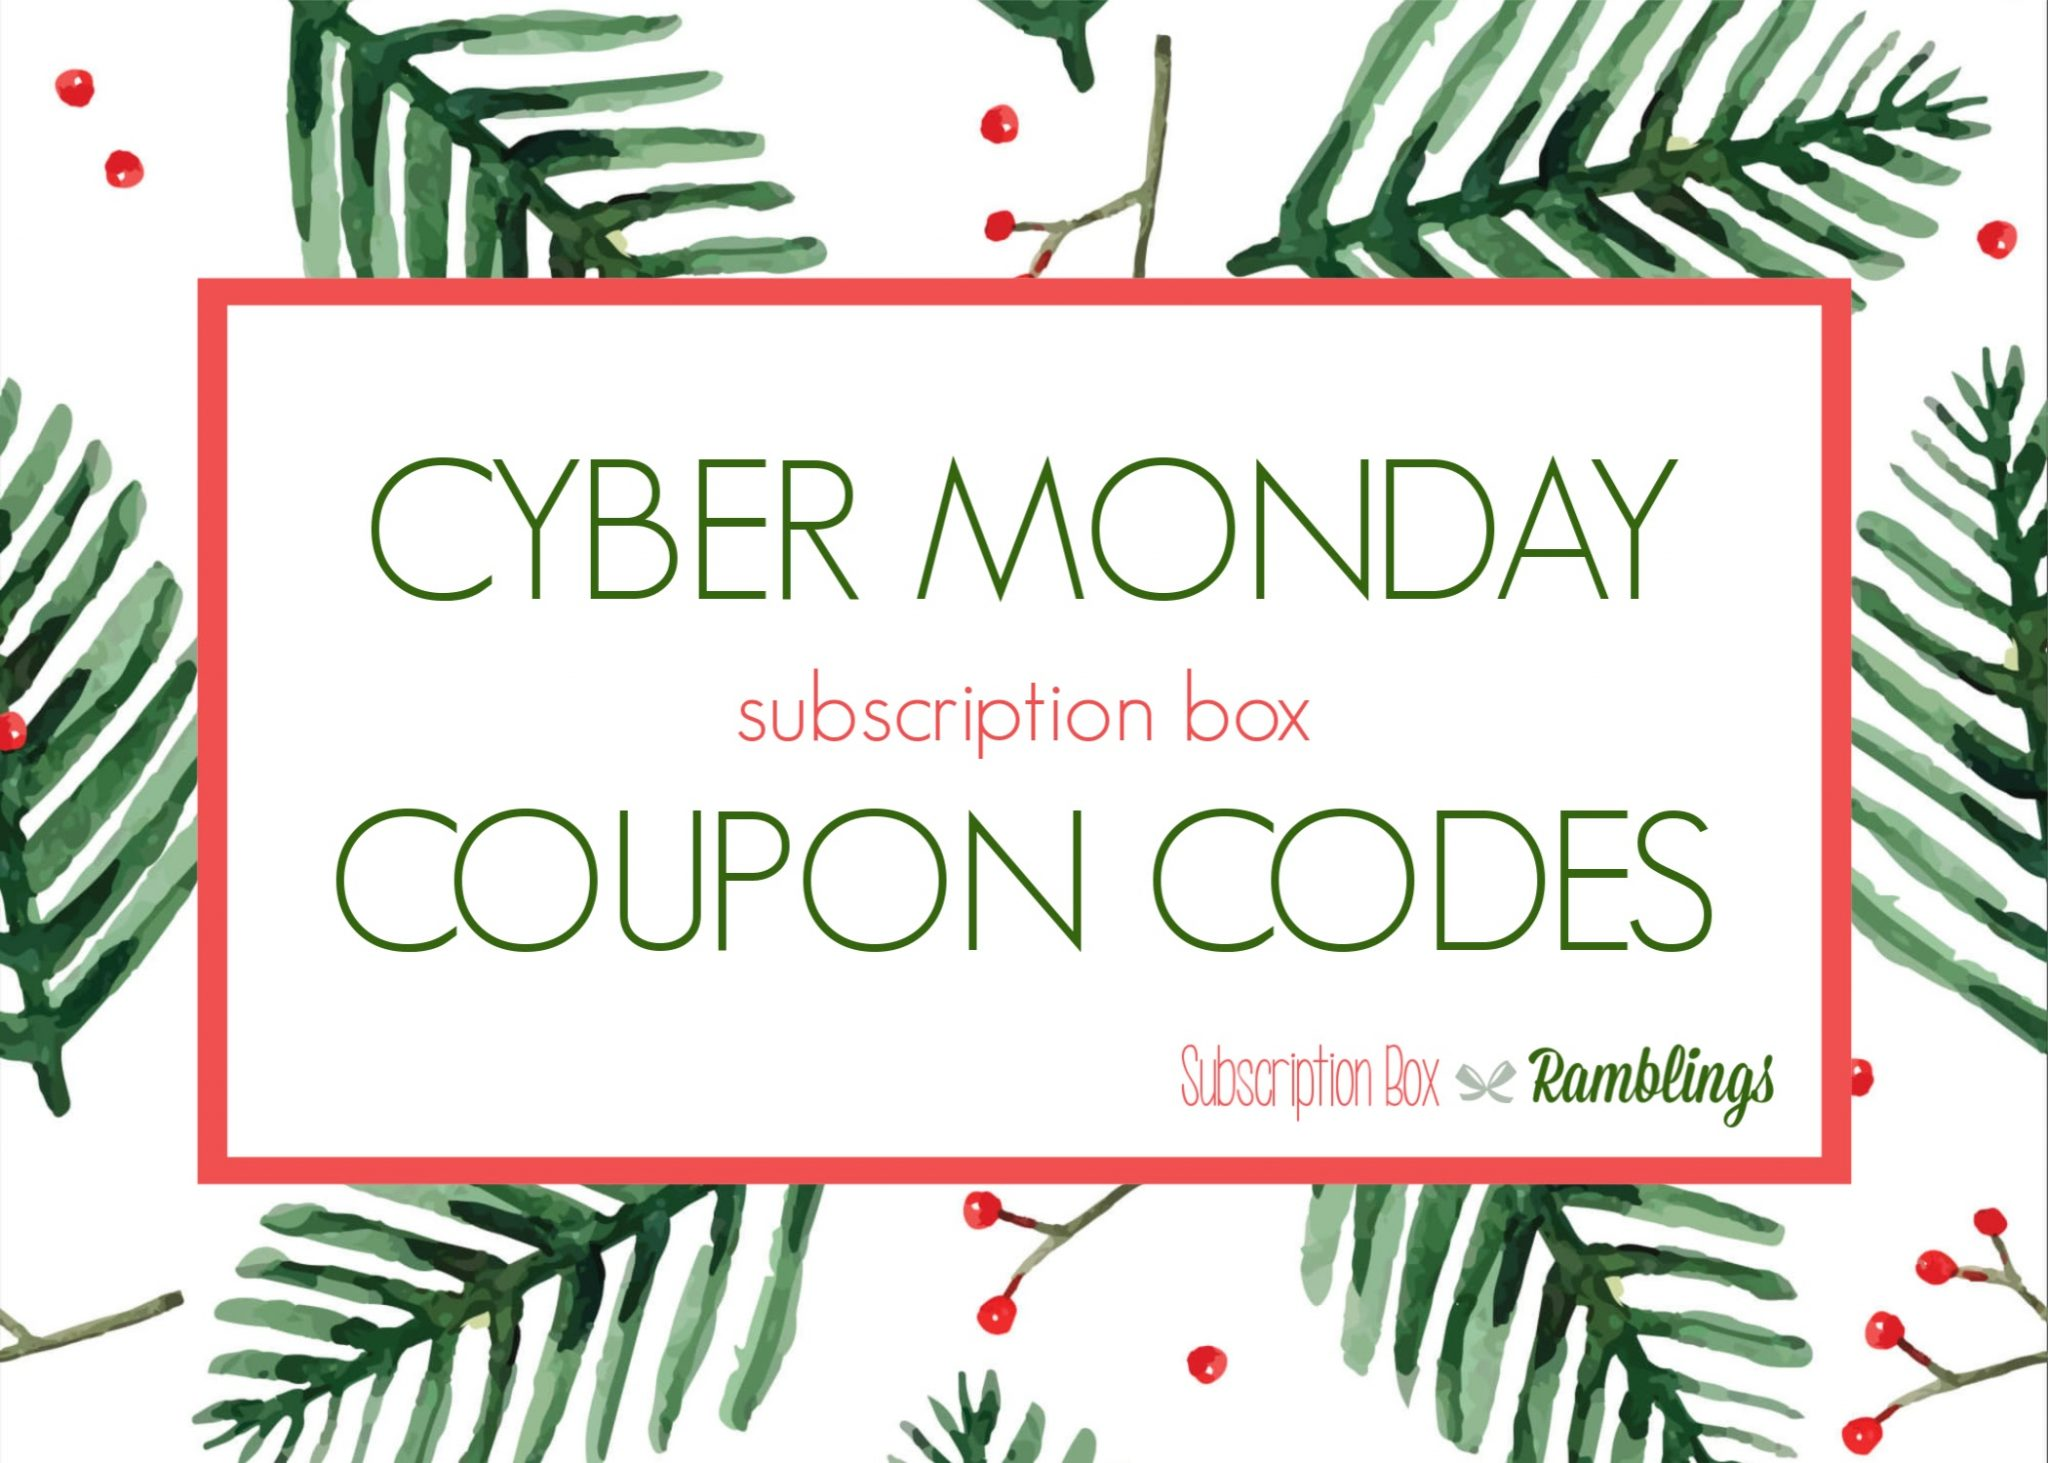 Cyber Monday Subscription Box Coupon Codes & Deals!